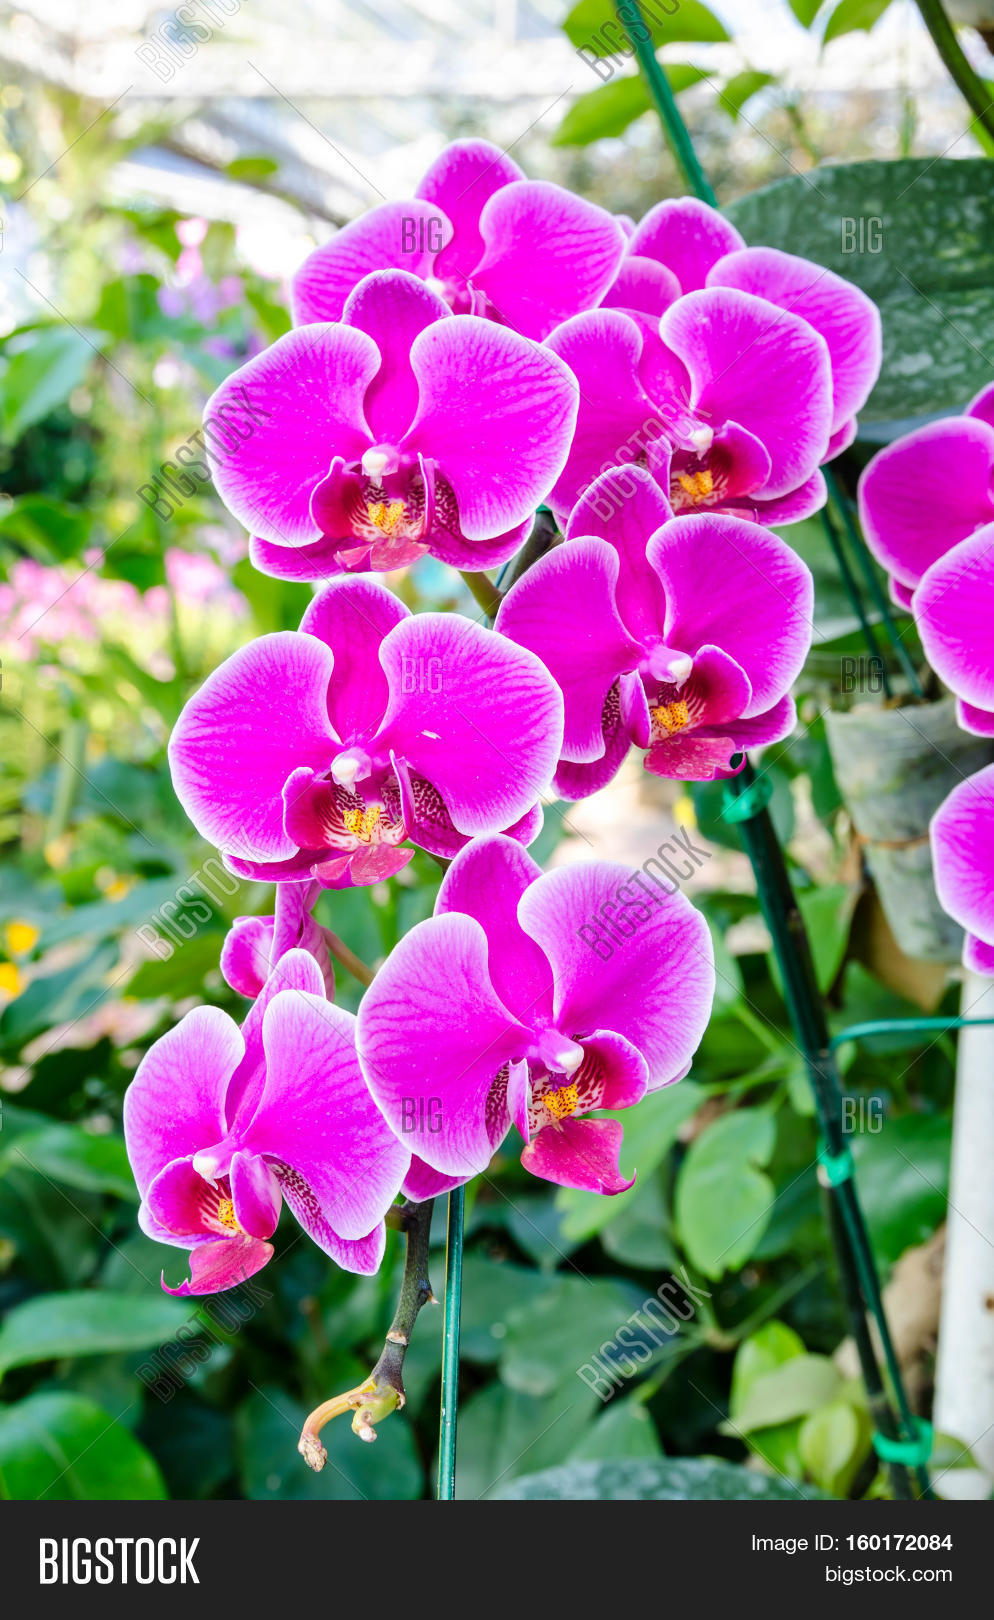 Beautiful orchid image photo free trial bigstock beautiful orchid flowers in the natural garden izmirmasajfo